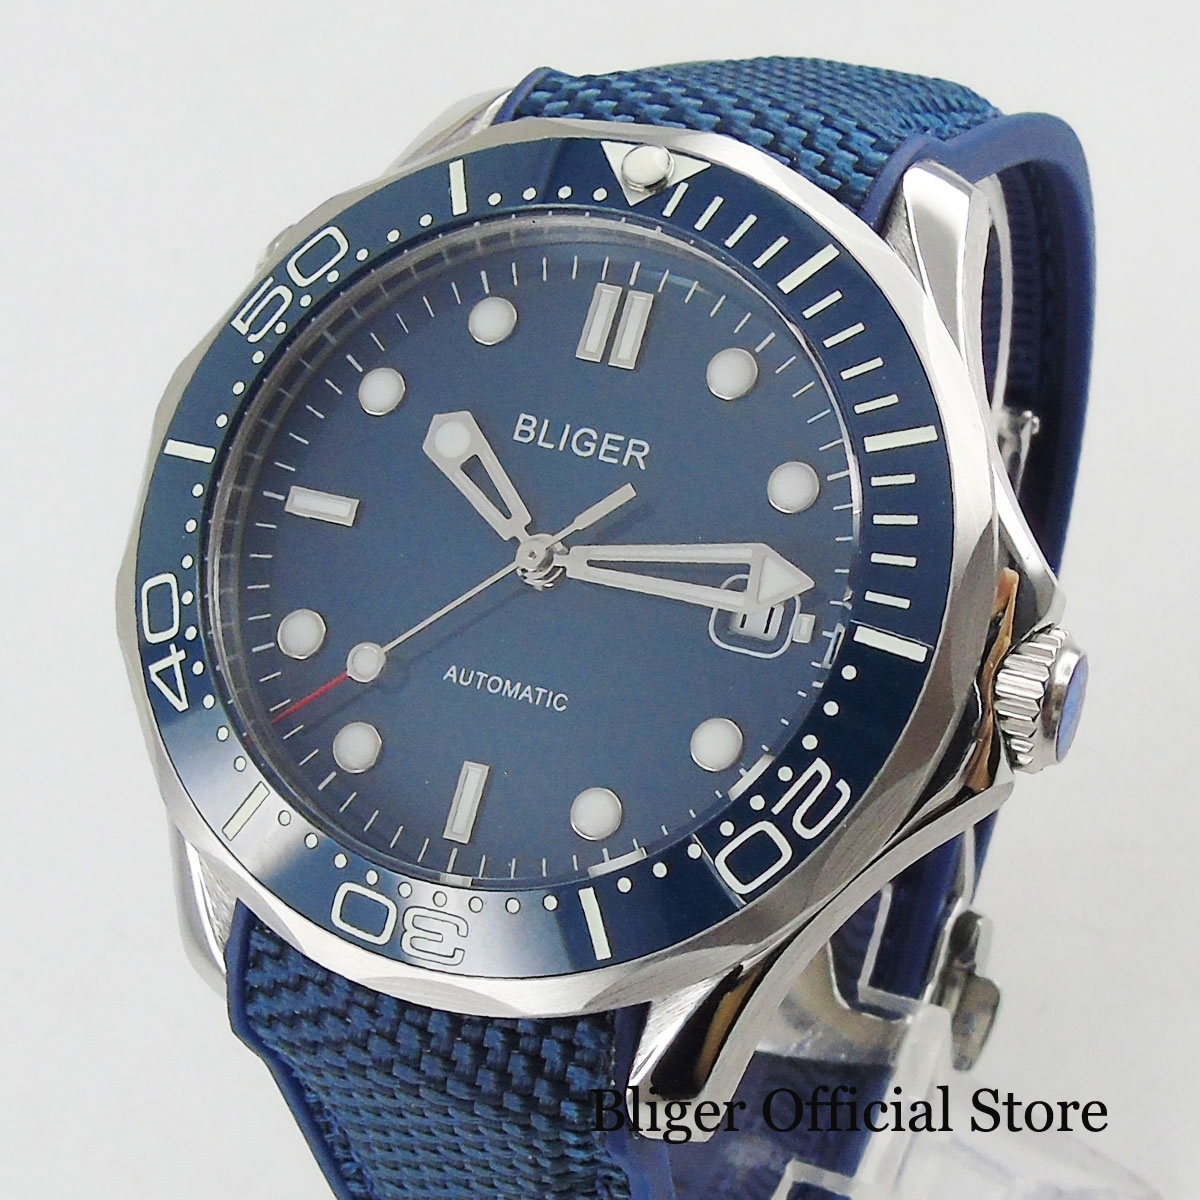 BLIGER Automatic Men's Watch With Date Window Wristwatch Rubber Strap 41mm Time Watch